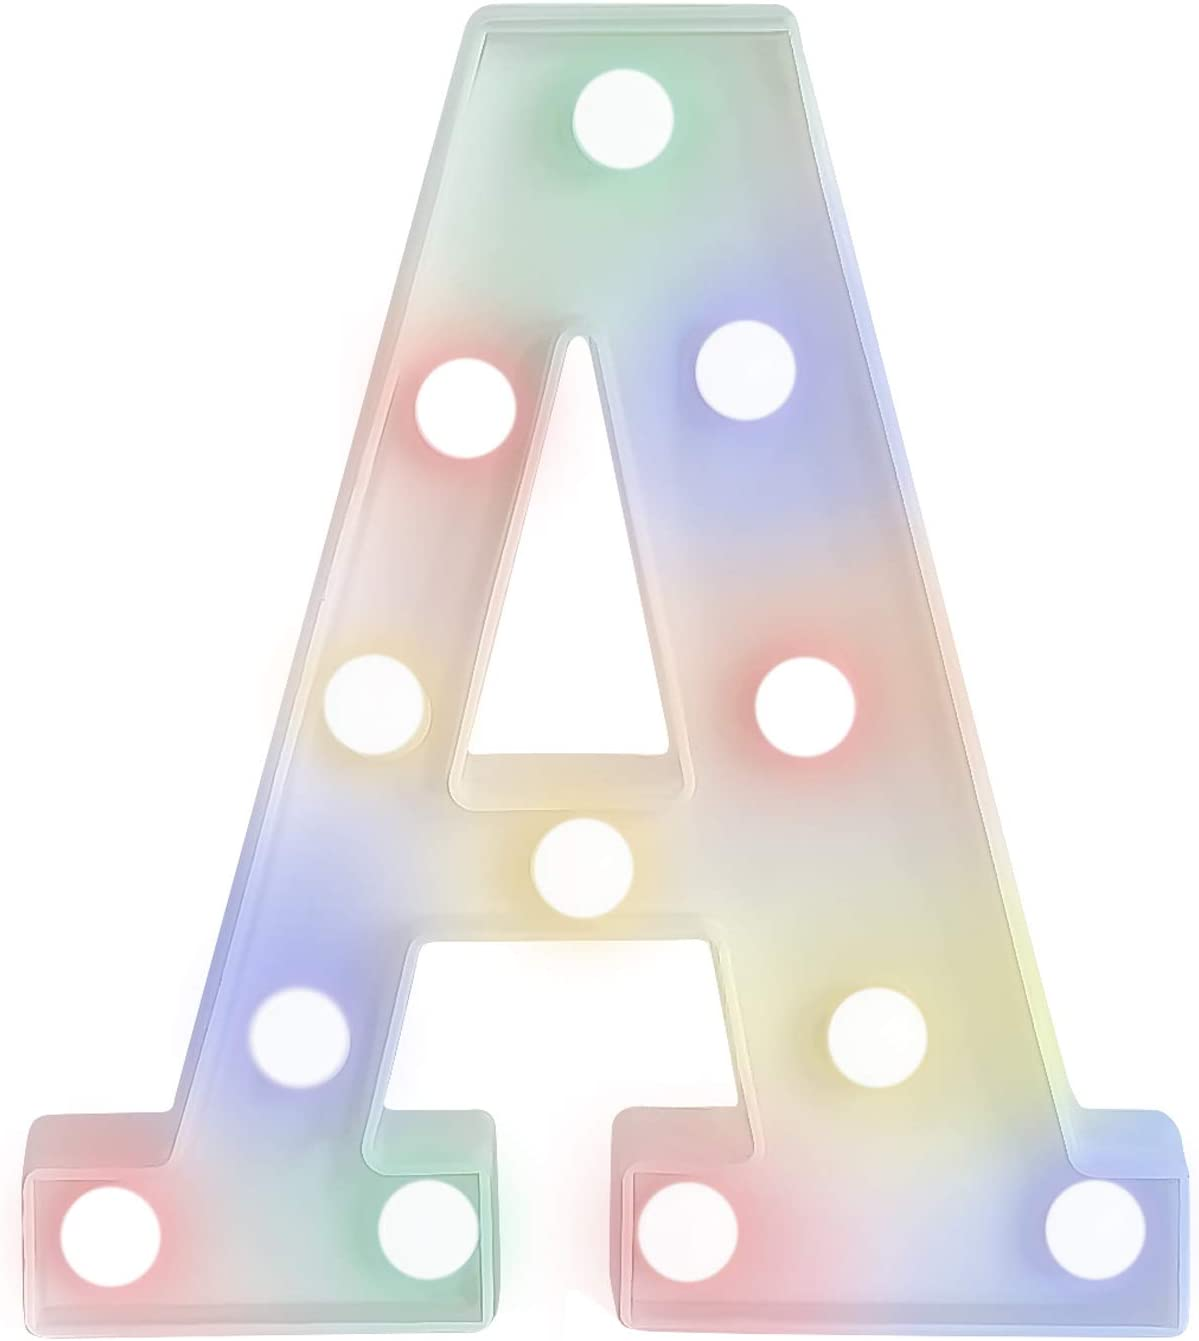 ZRO LED Letter Lights 16 Colors-Changing, 3D Night Lamp 26 Alphabet A-Z LED Marquee Sign with Remote Control for New Year Eve Valentine's Day Home Decor Birthday Party Wedding Bedroom Wall Decor (A)